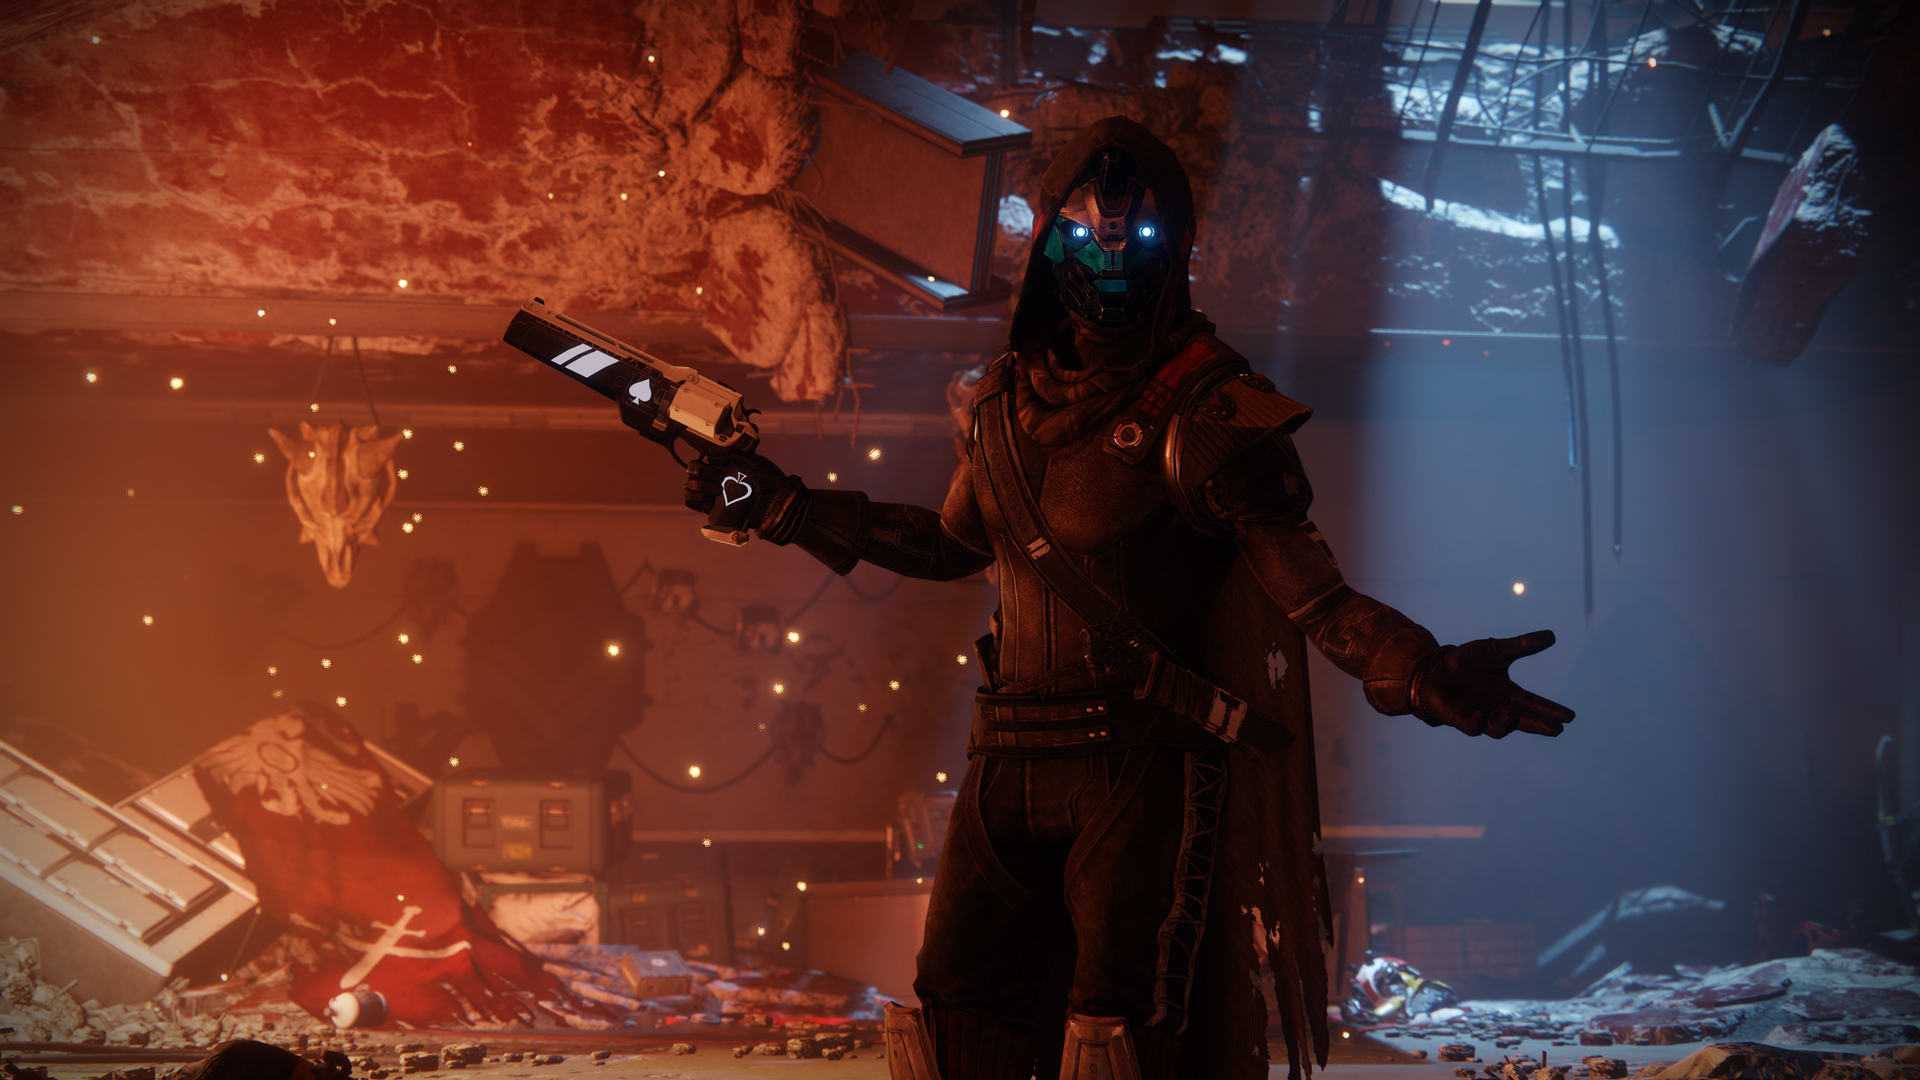 Destiny, another First Person Shooter Game